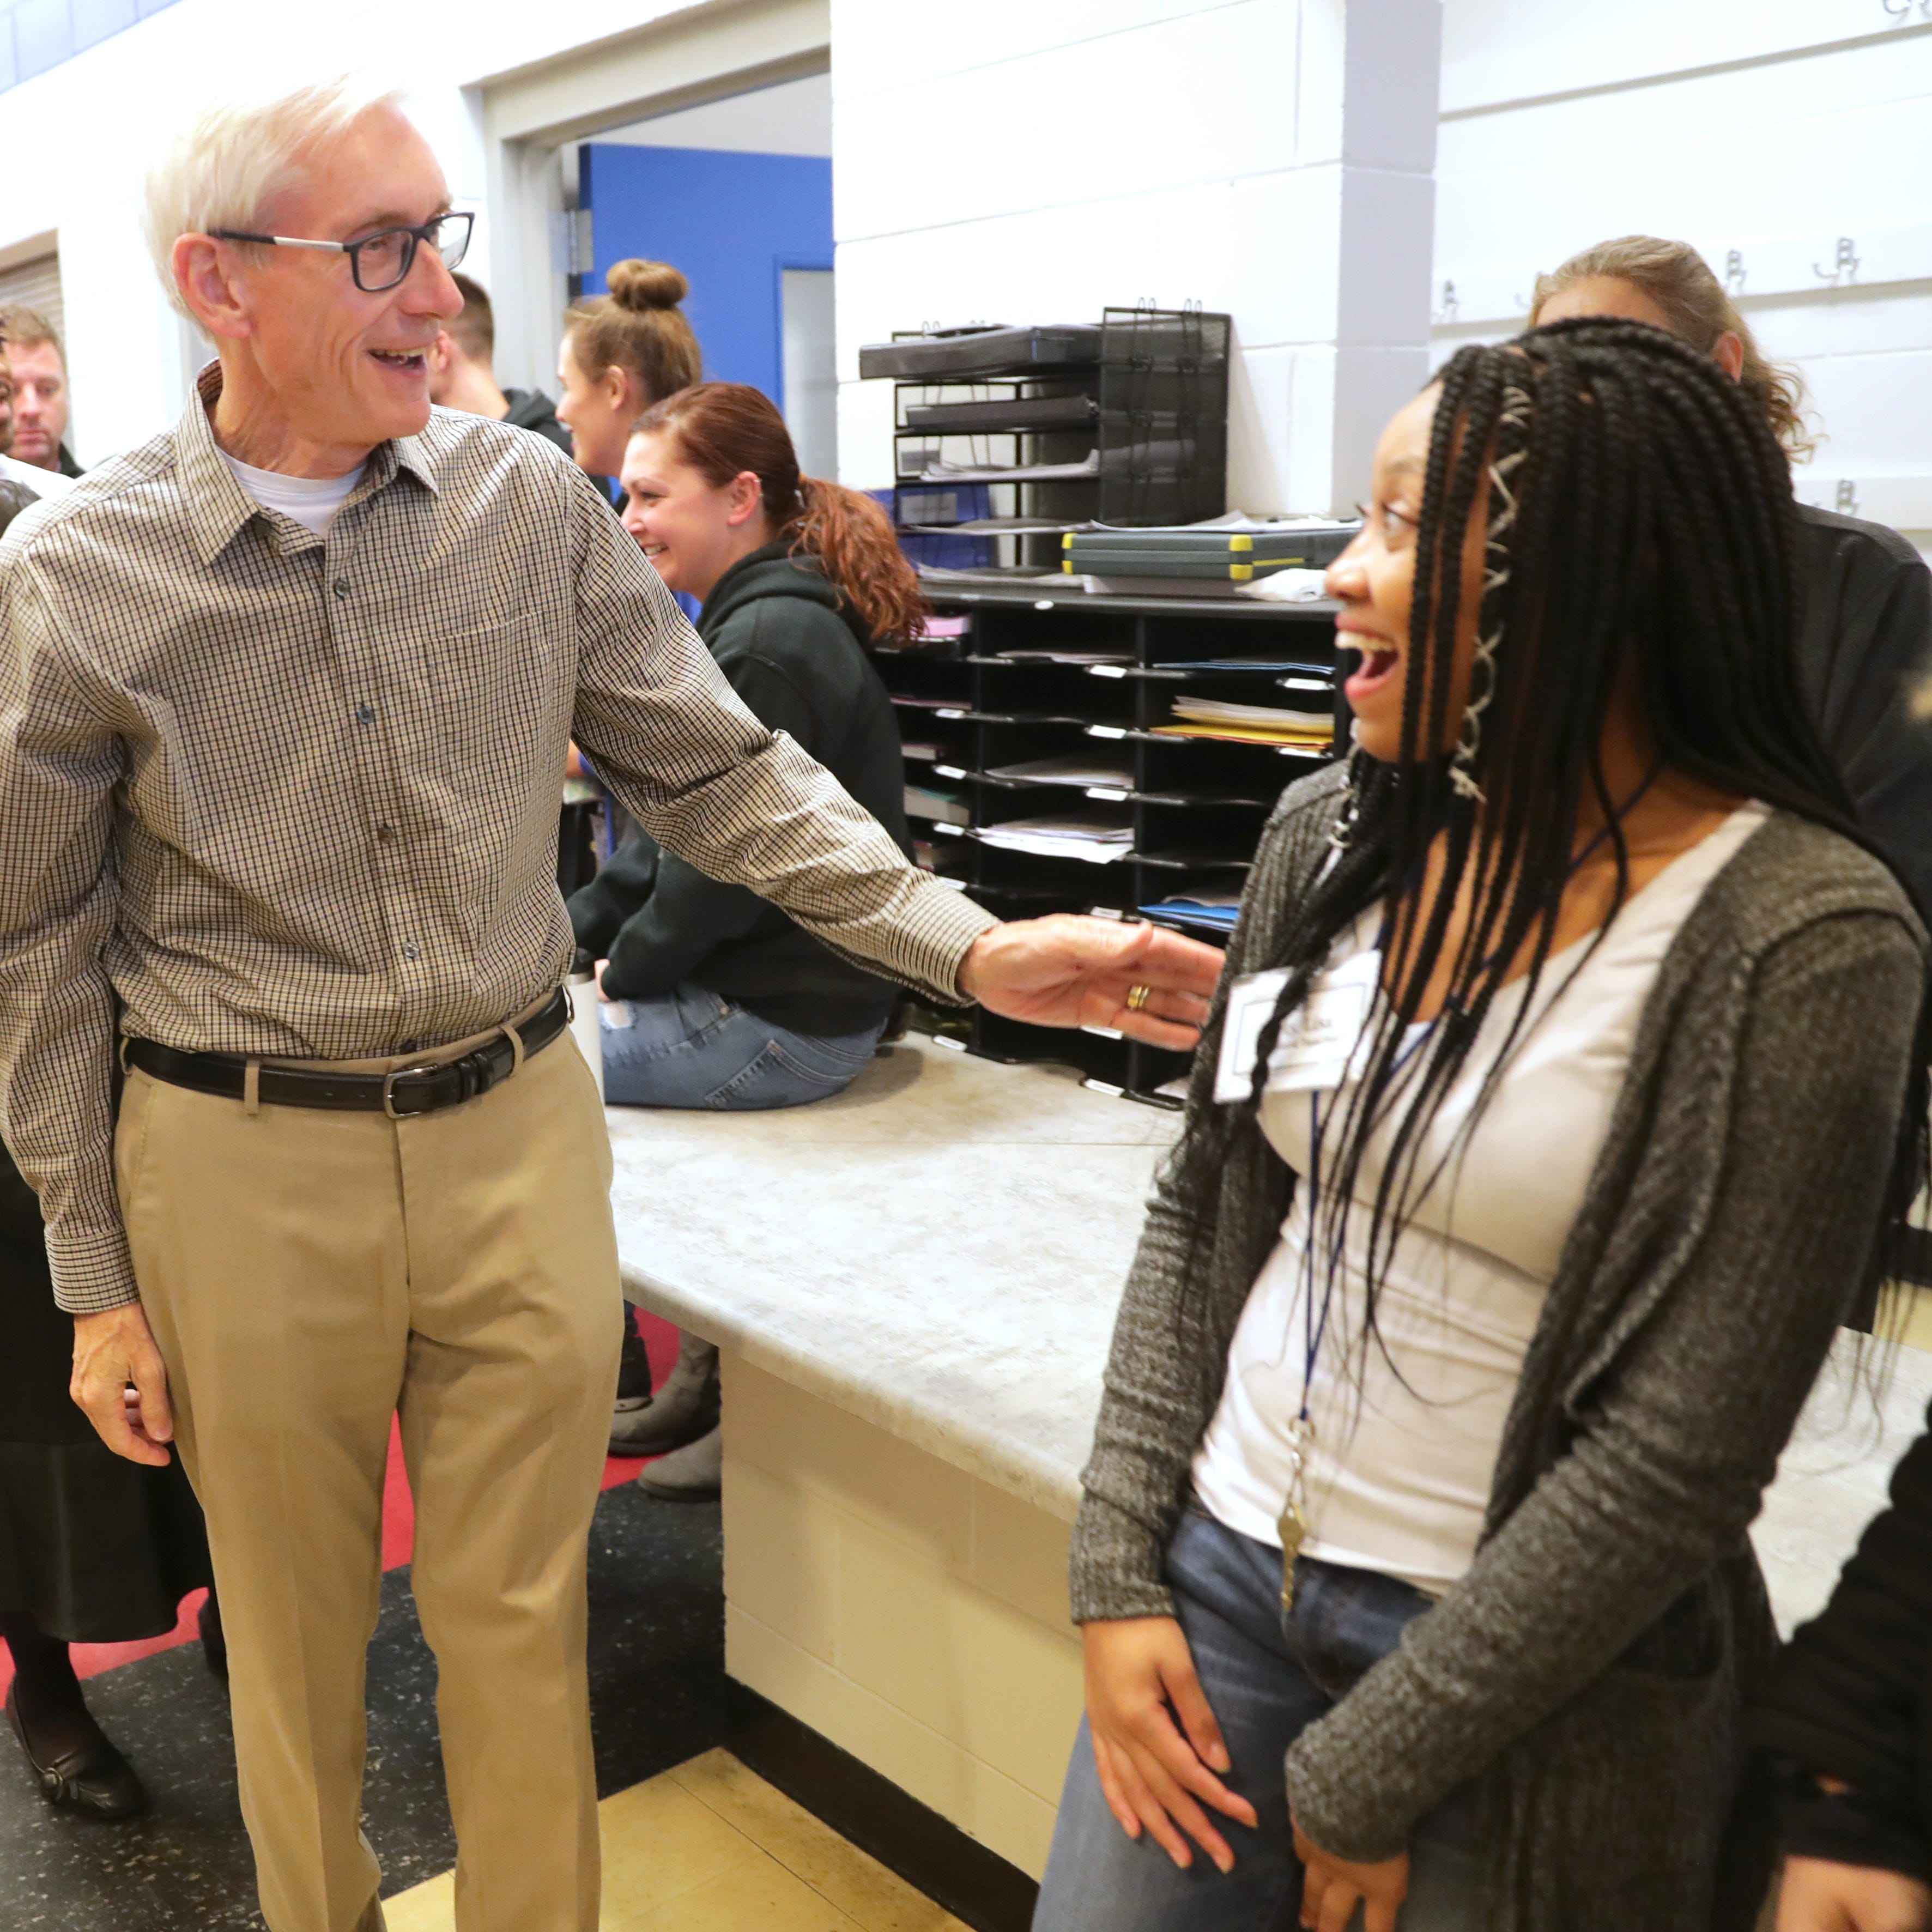 'We have a long way to go': Gov. Tony Evers outlines priorities for youth mental health